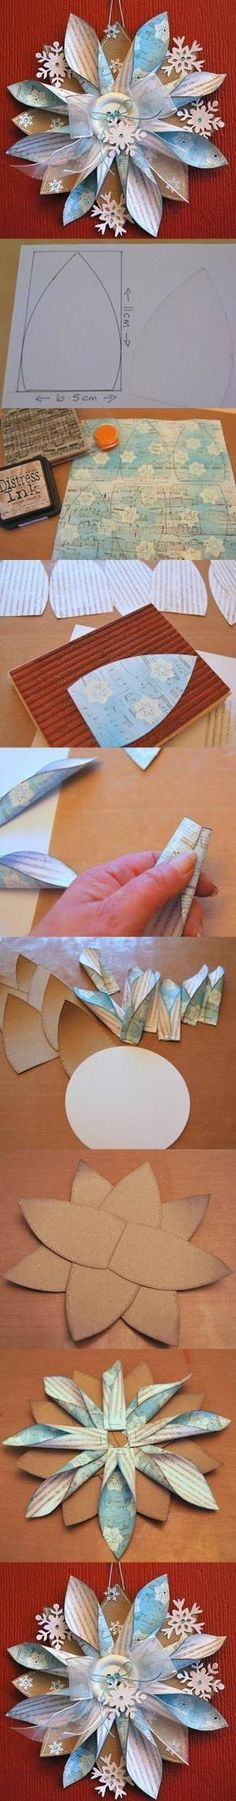 Papel DIY flor de ornato por faiiz.fully